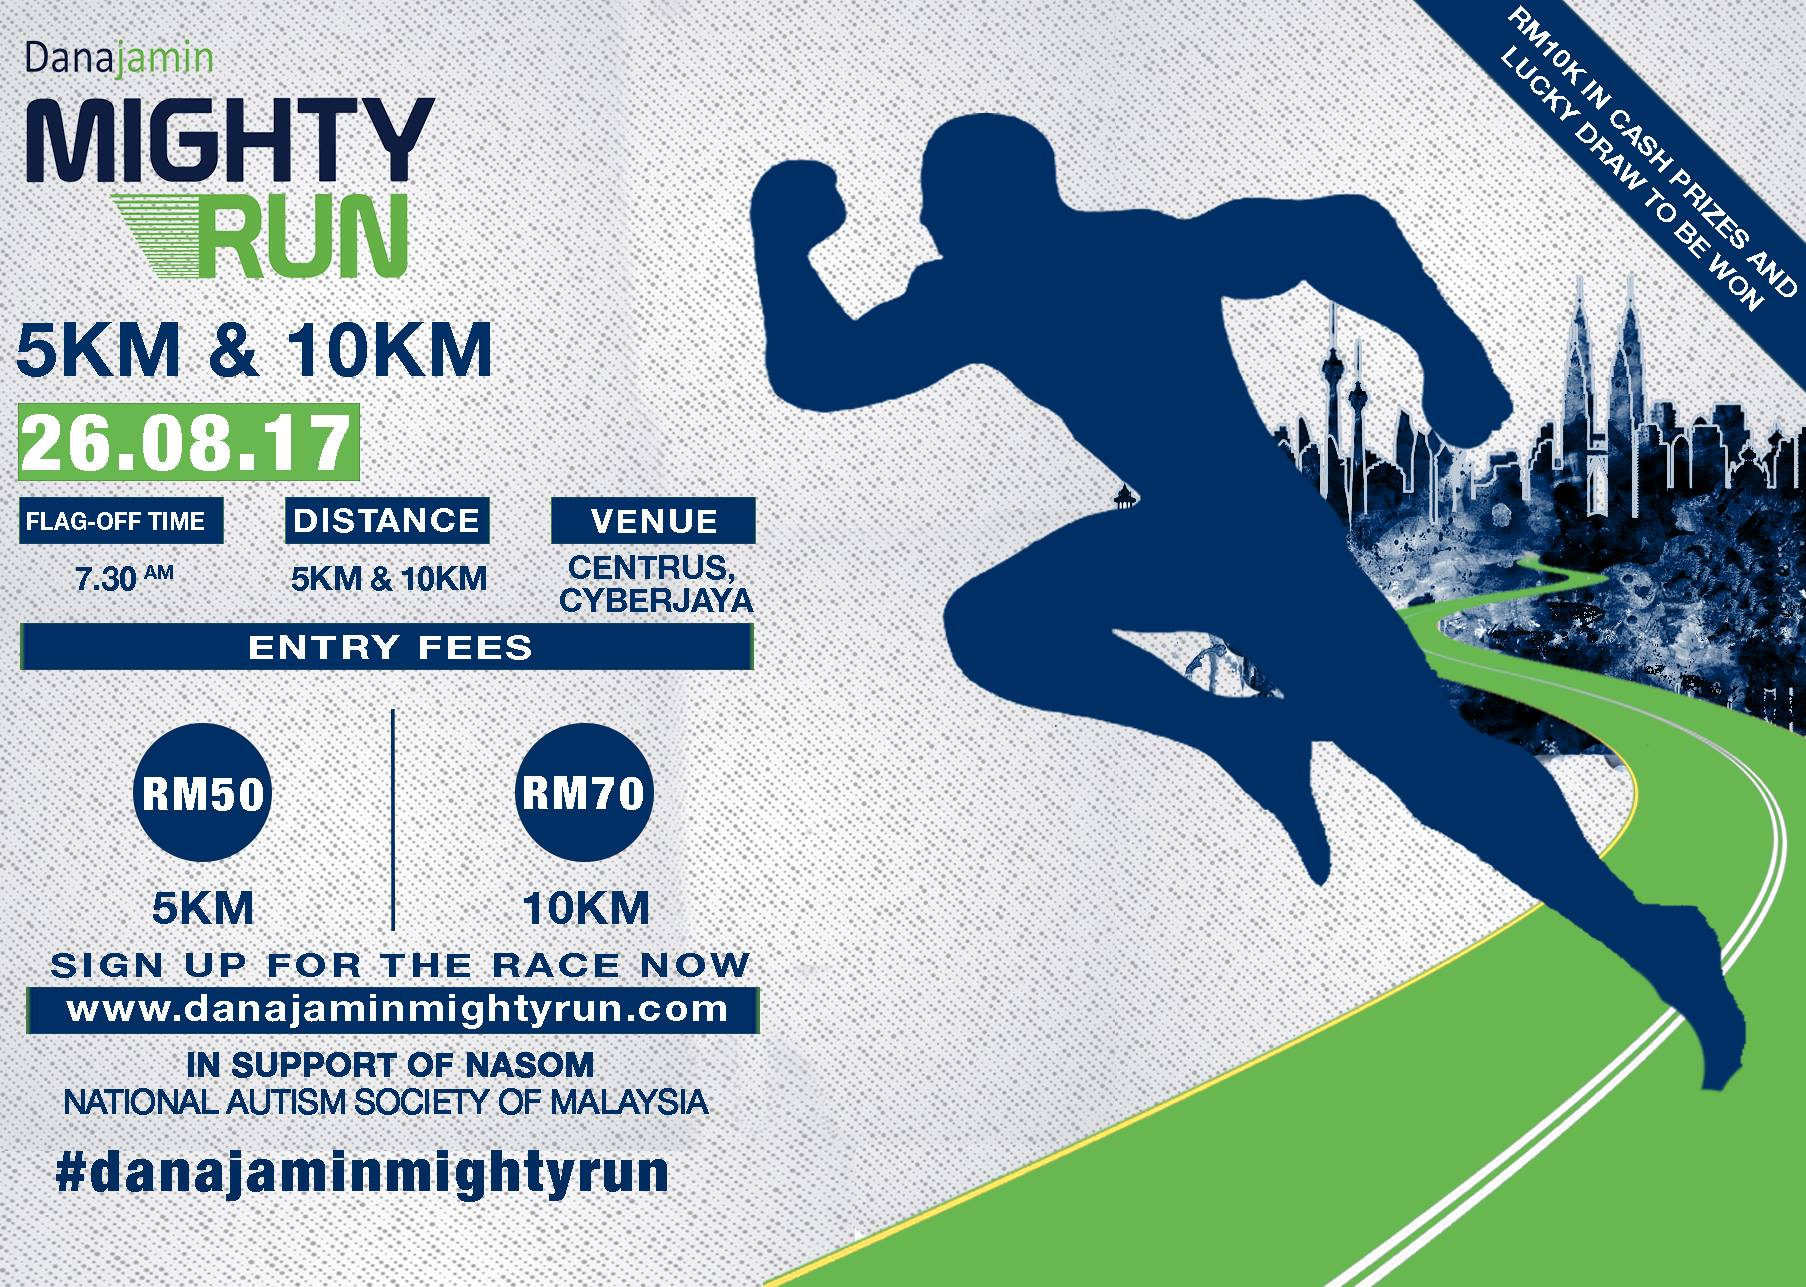 danajamin mighty run